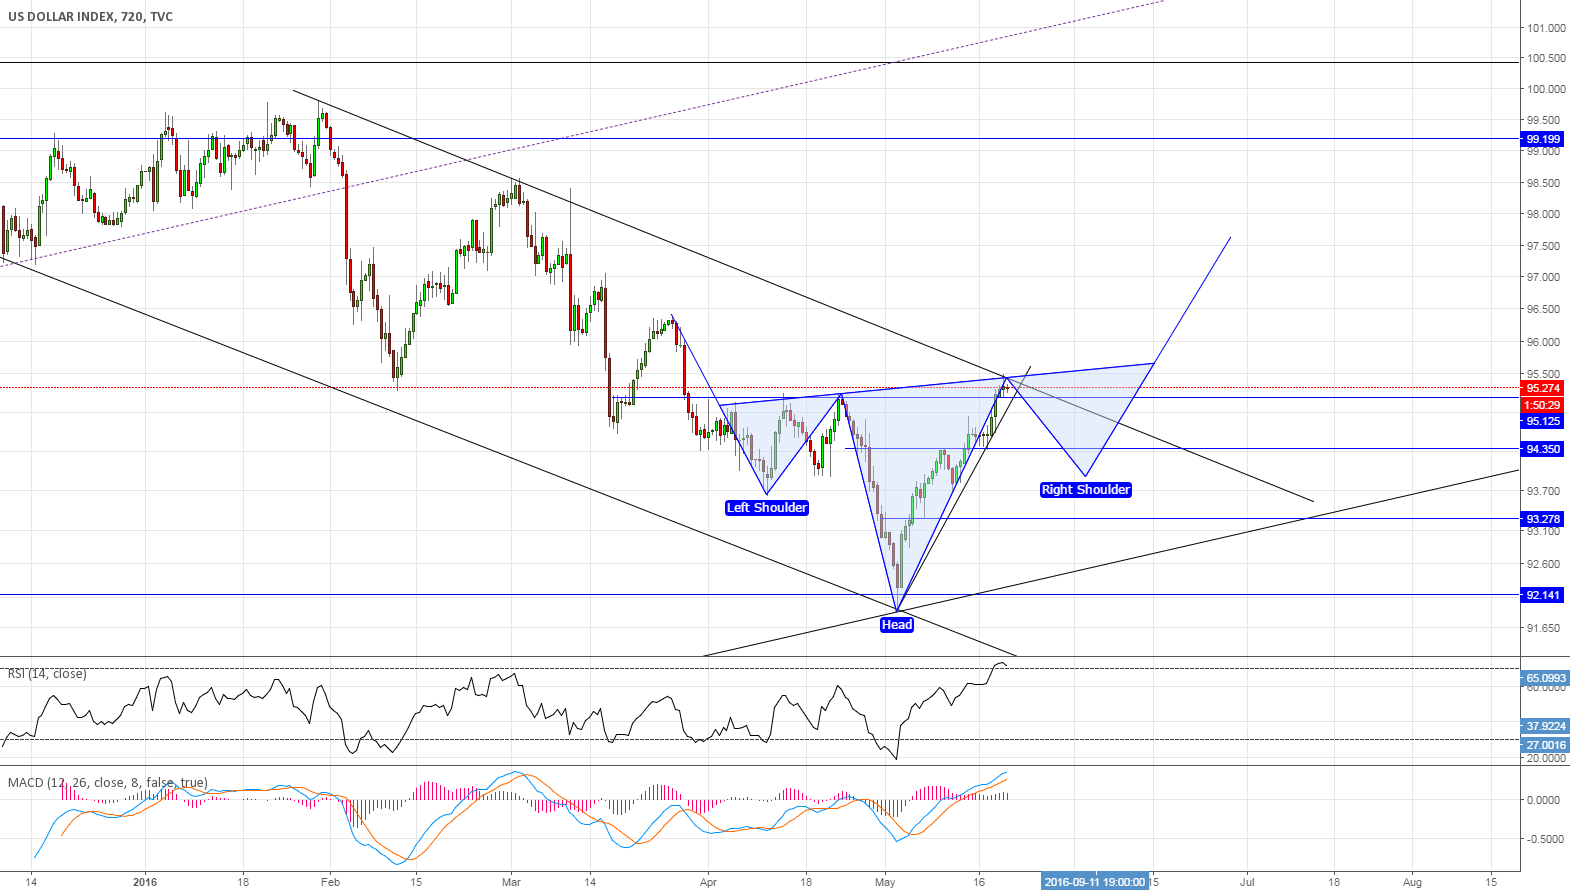 #DXY consolidation phase of the first leg up